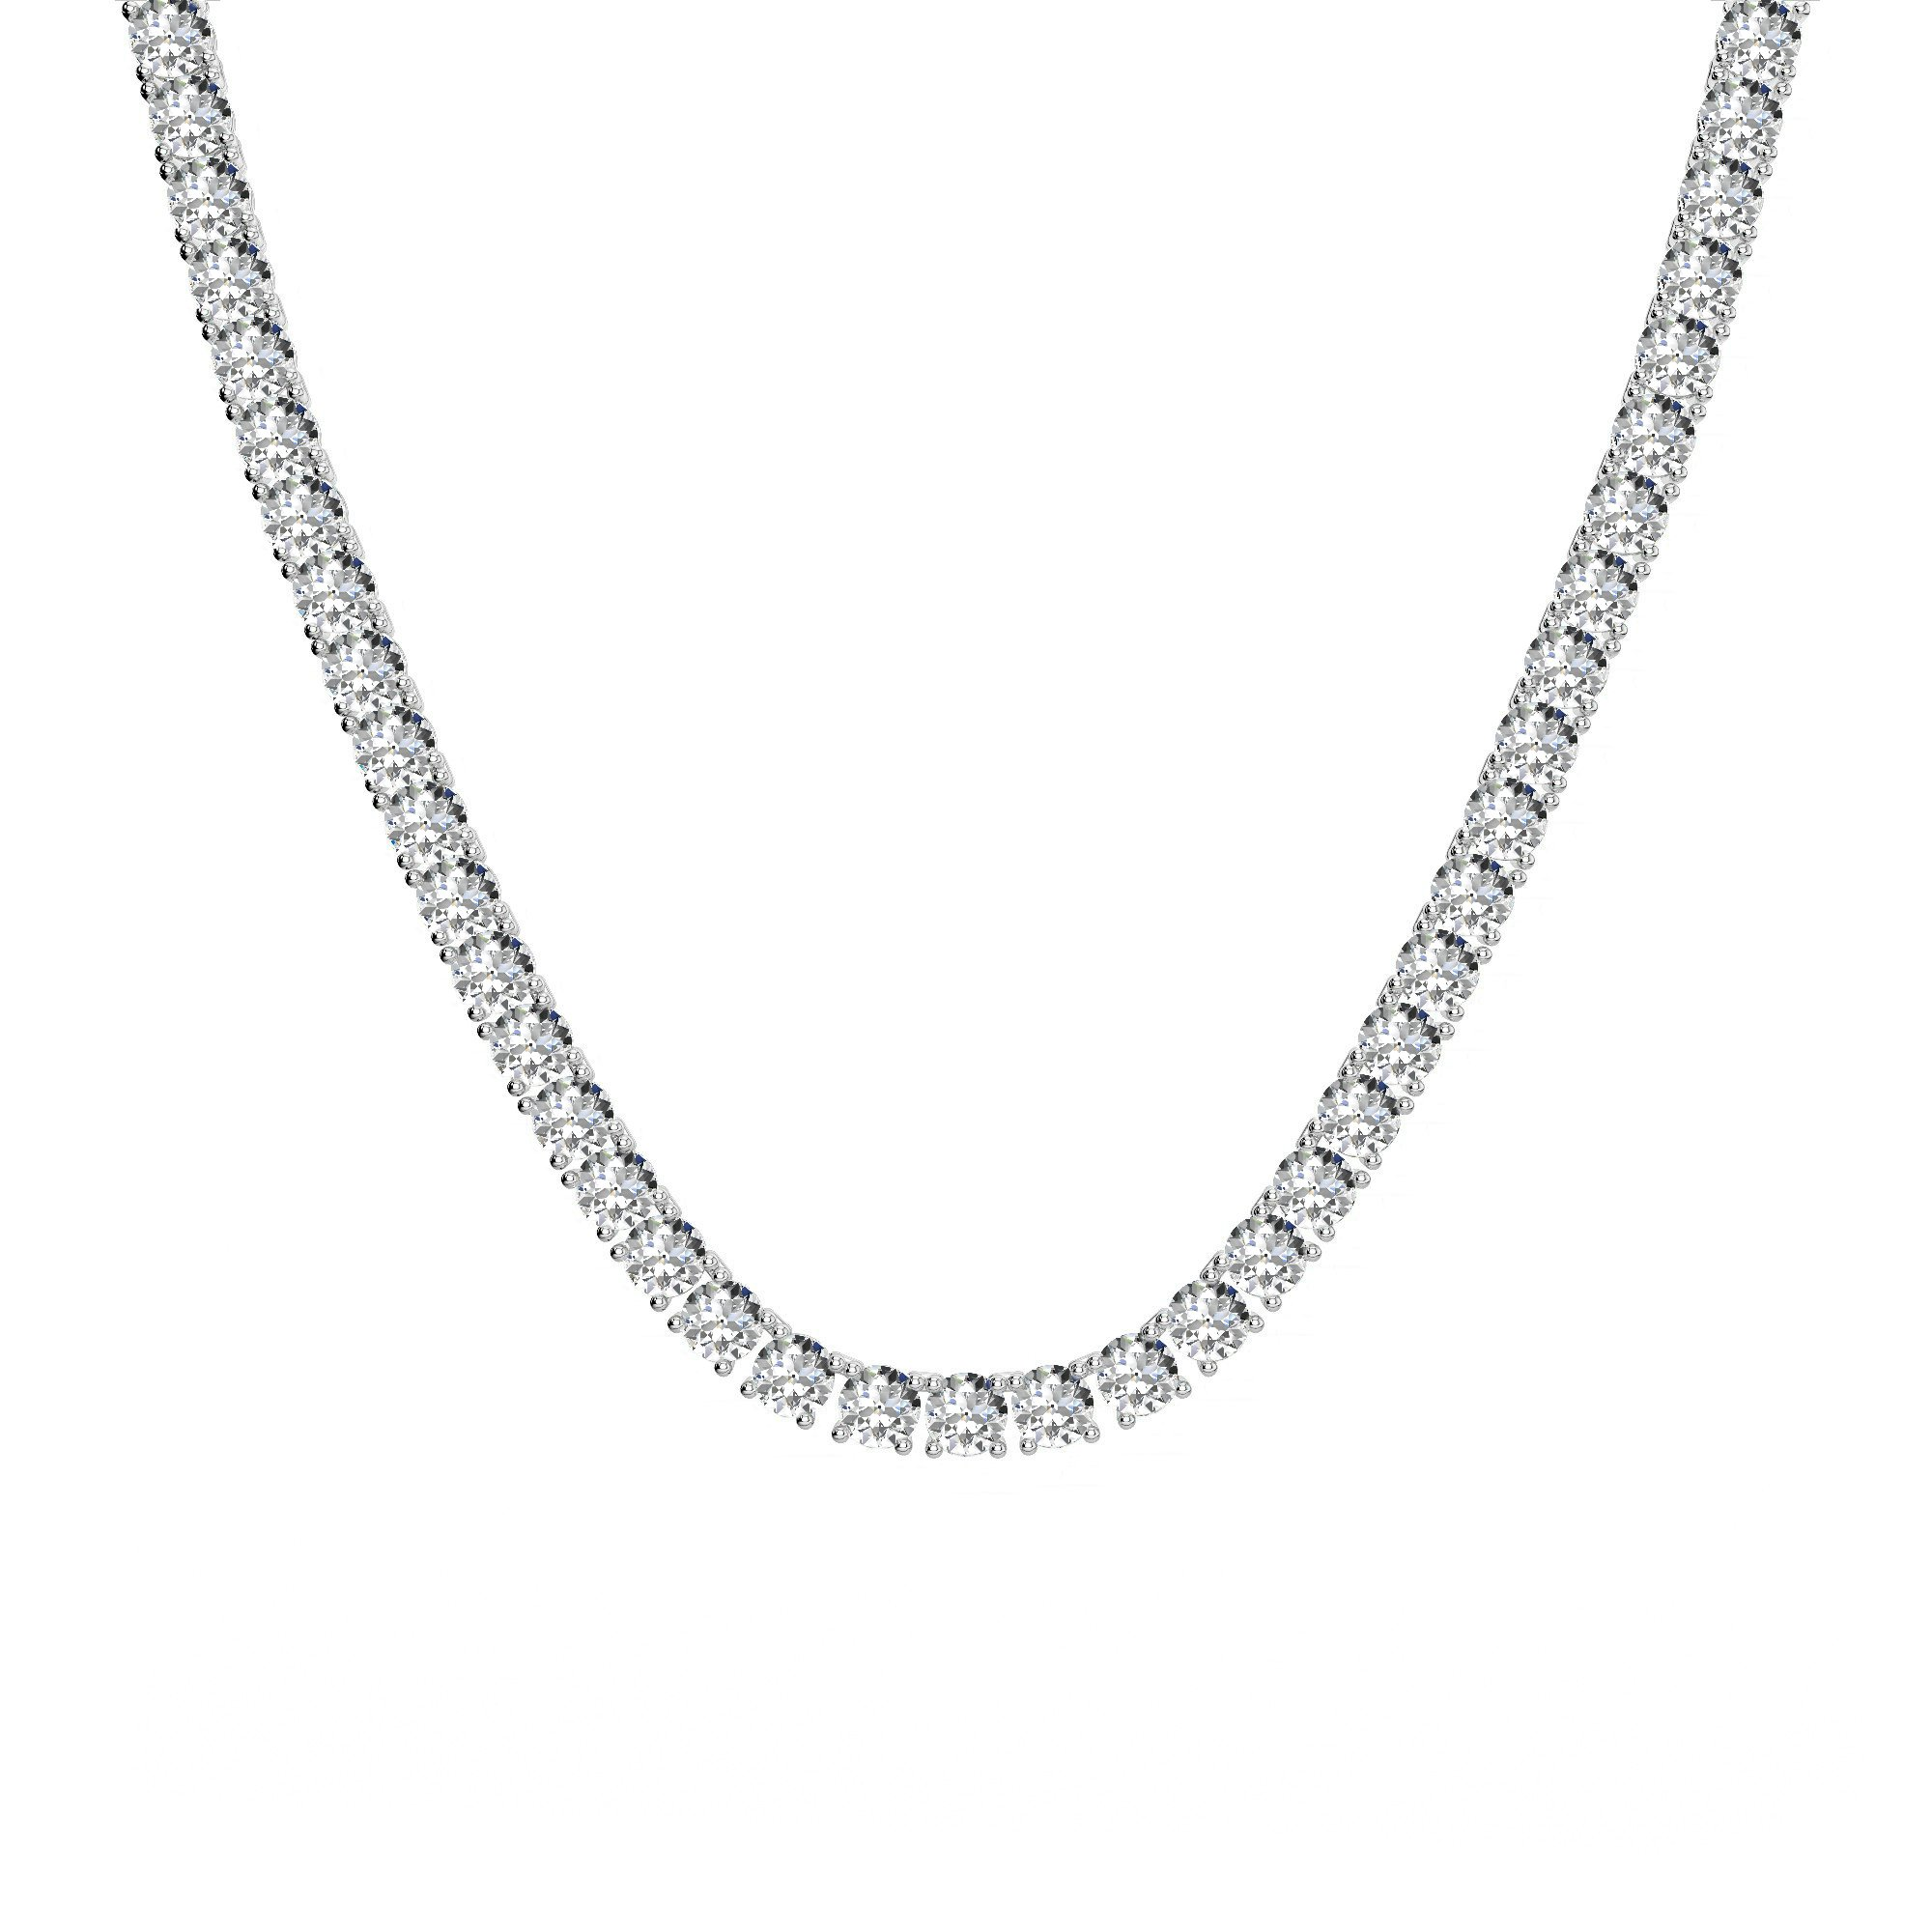 40 Carat Old European Cut Harro Moissanite Tennis Necklace